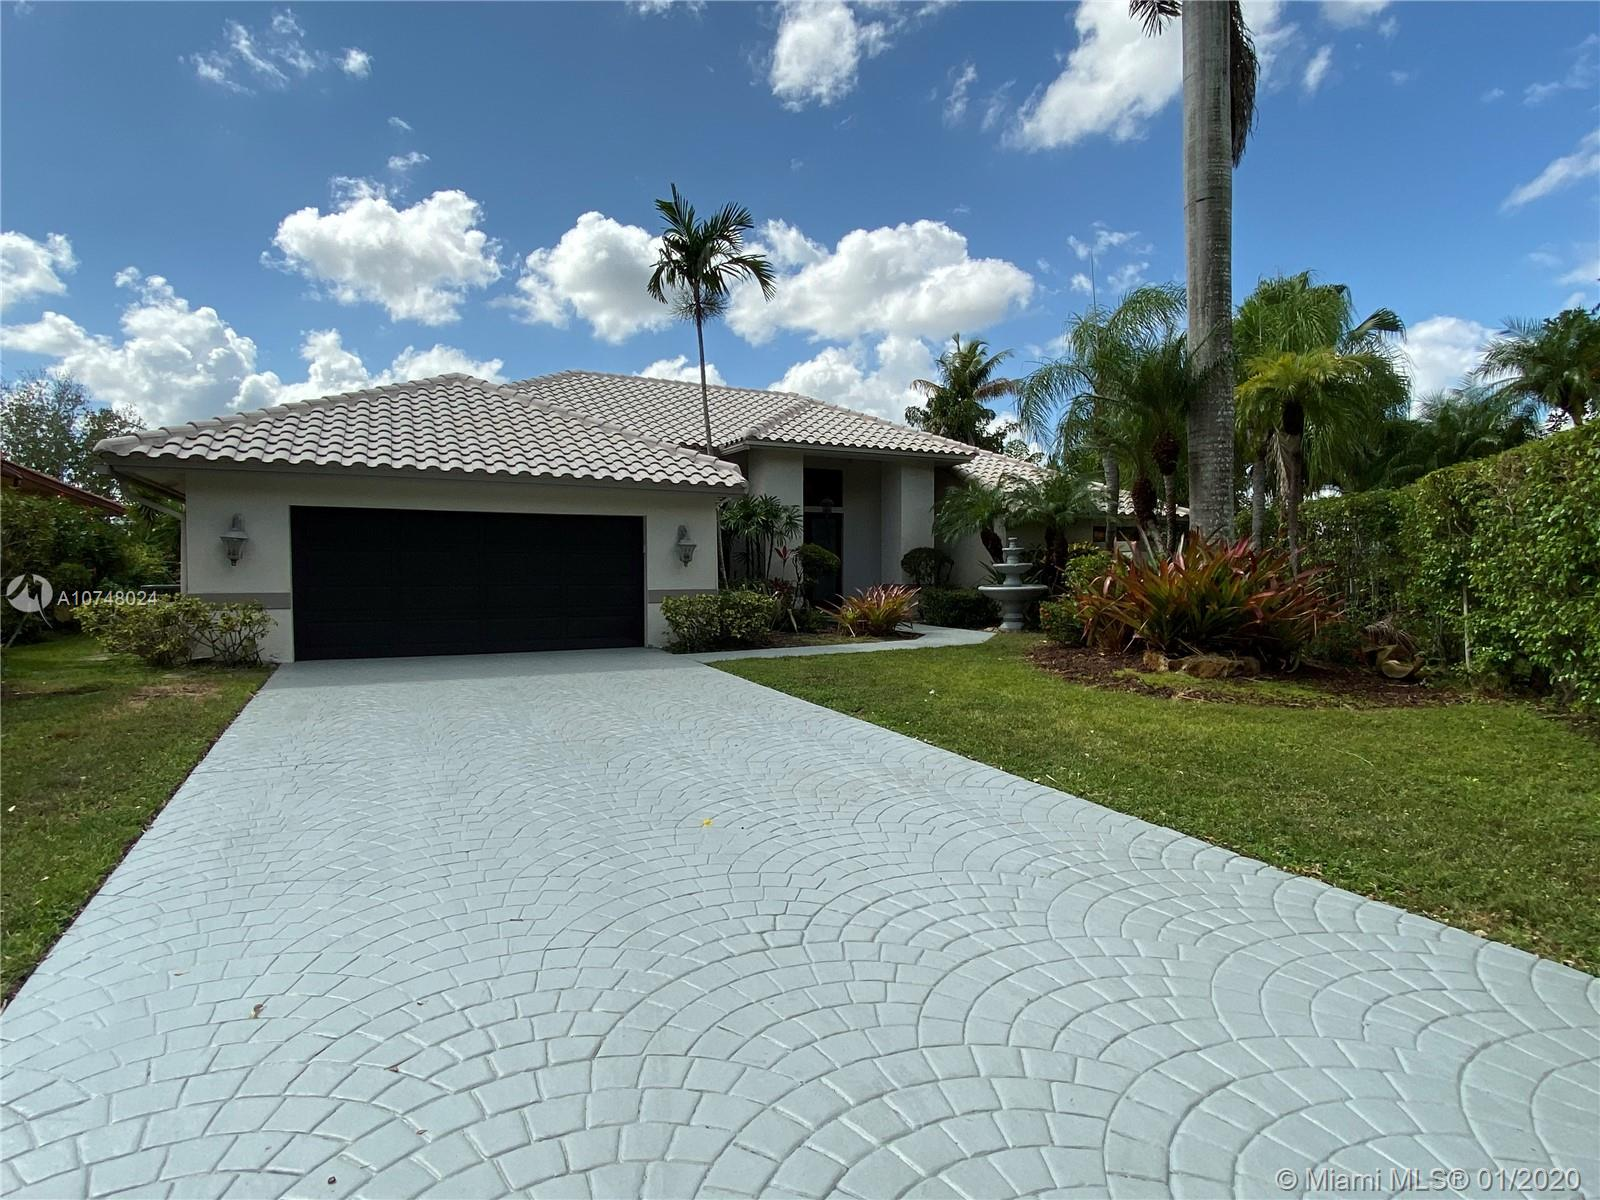 One story house with Pool at Tequesta sitting on Cul de Sac lot. New floors throughout. Freshly Painted.